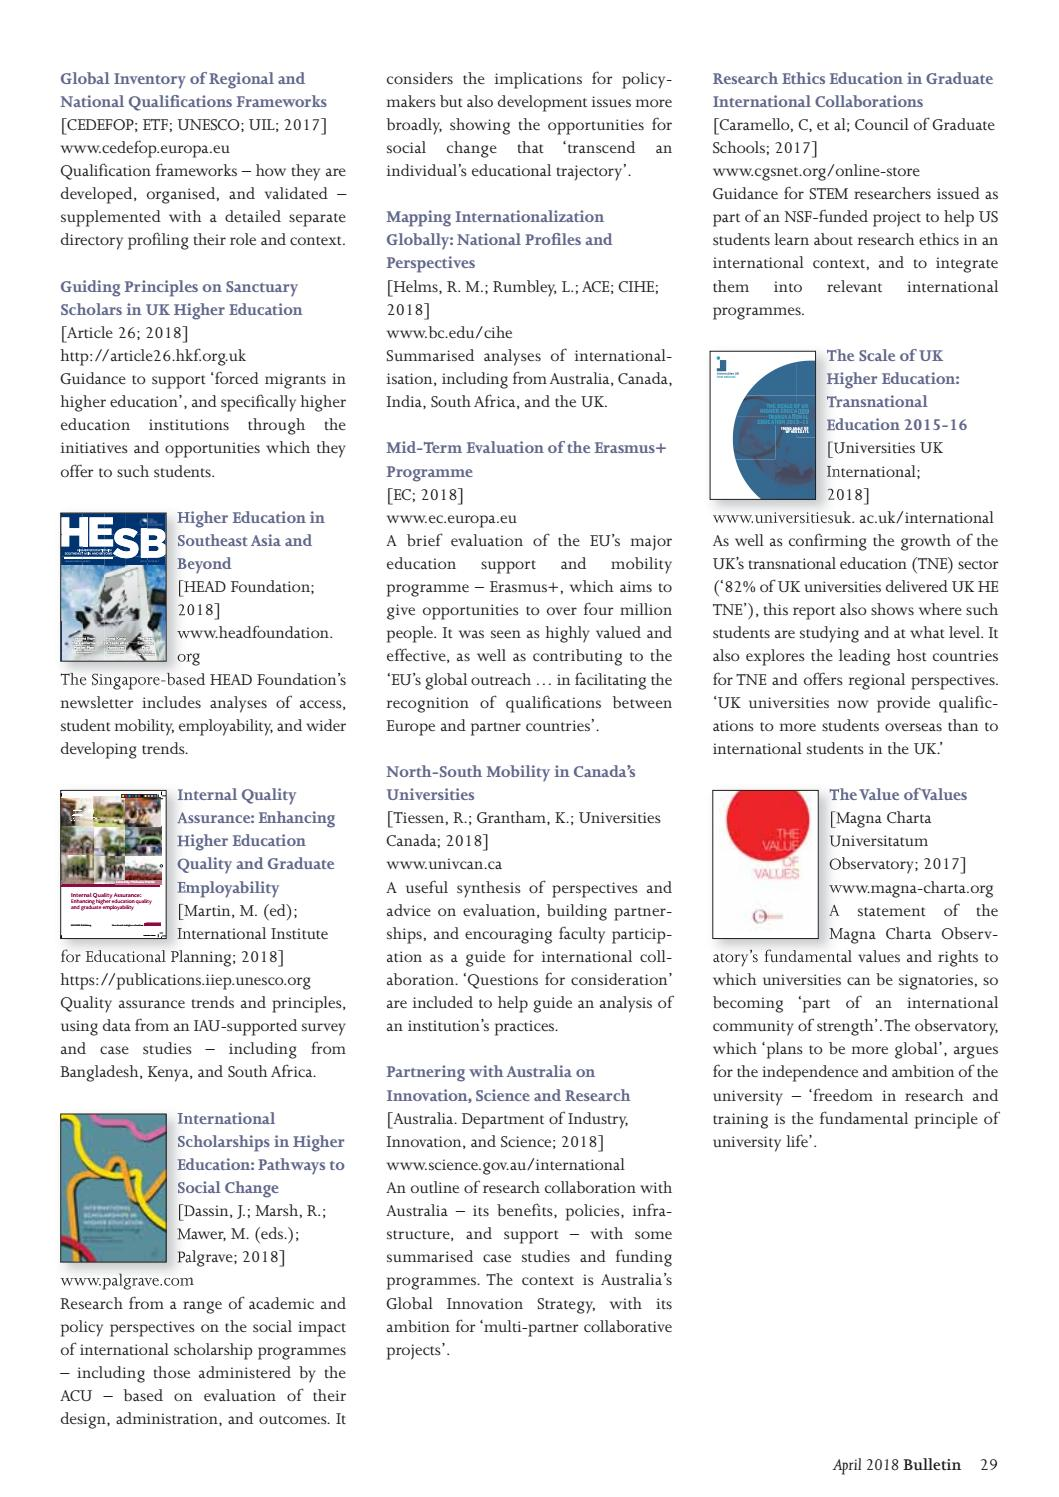 The Bulletin (no 193, April 2018) by The Association of Commonwealth